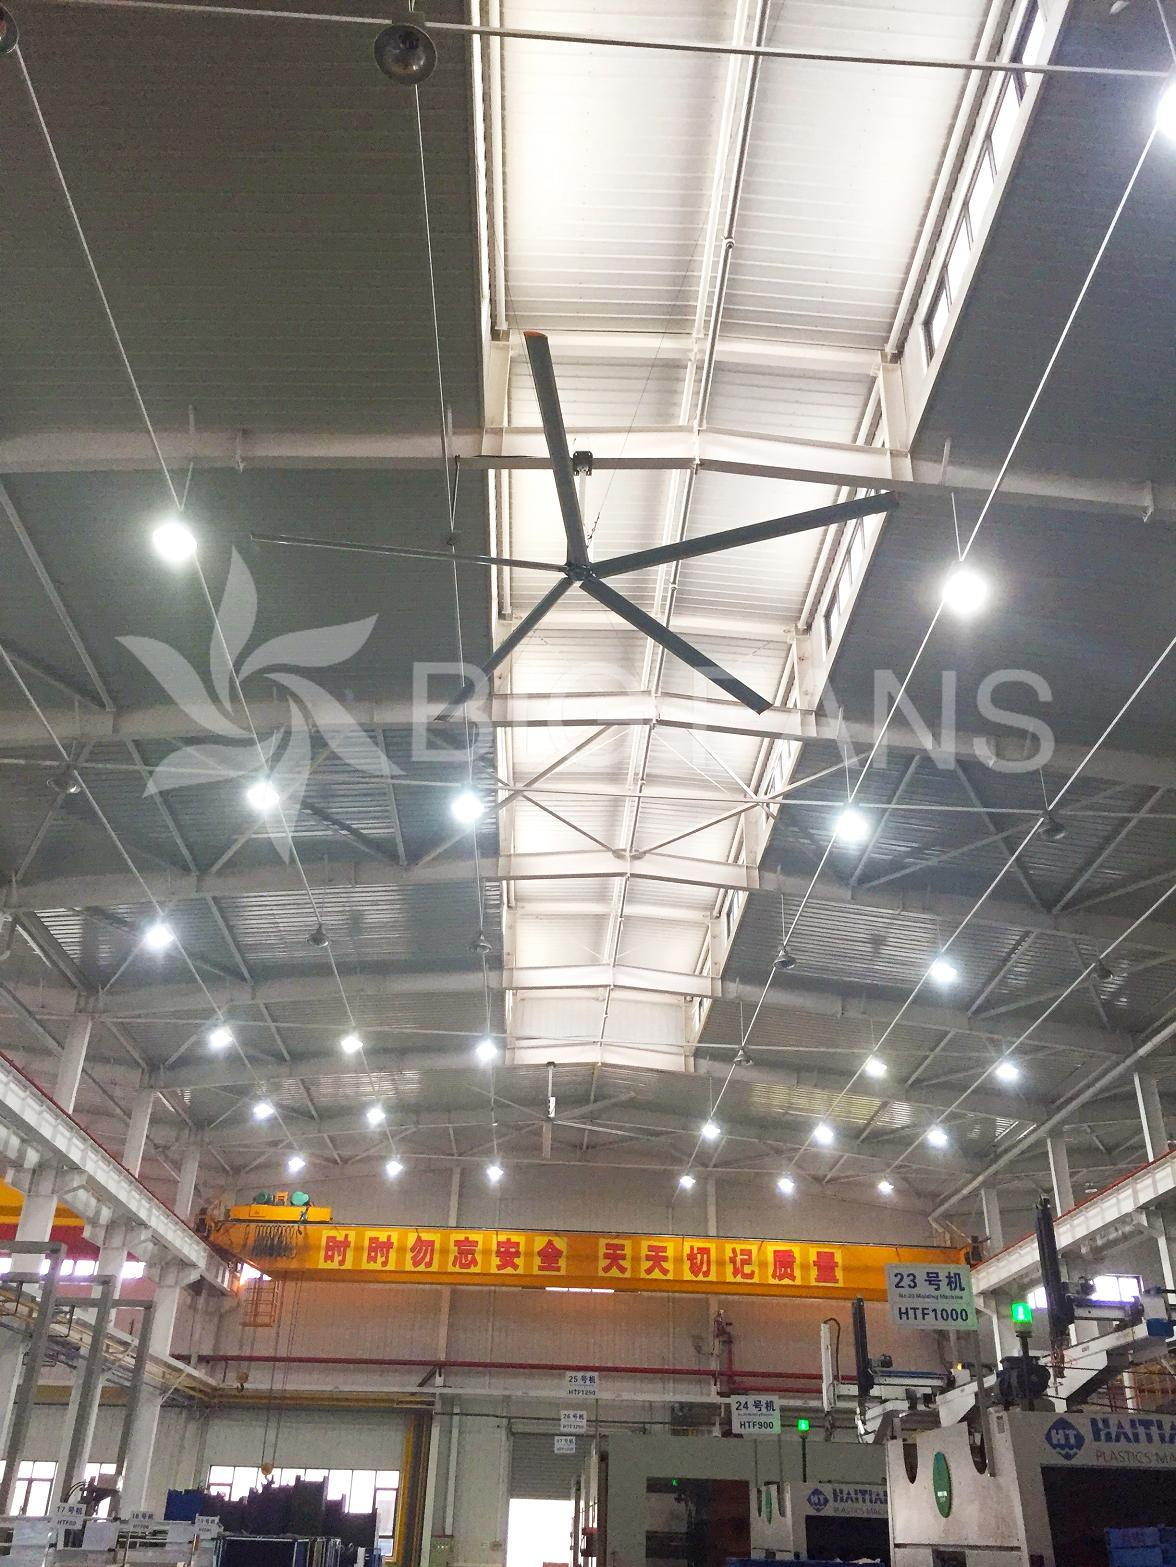 Bigfans 7.4m 380VAC Hvls Big Industrial Ceiling Fan